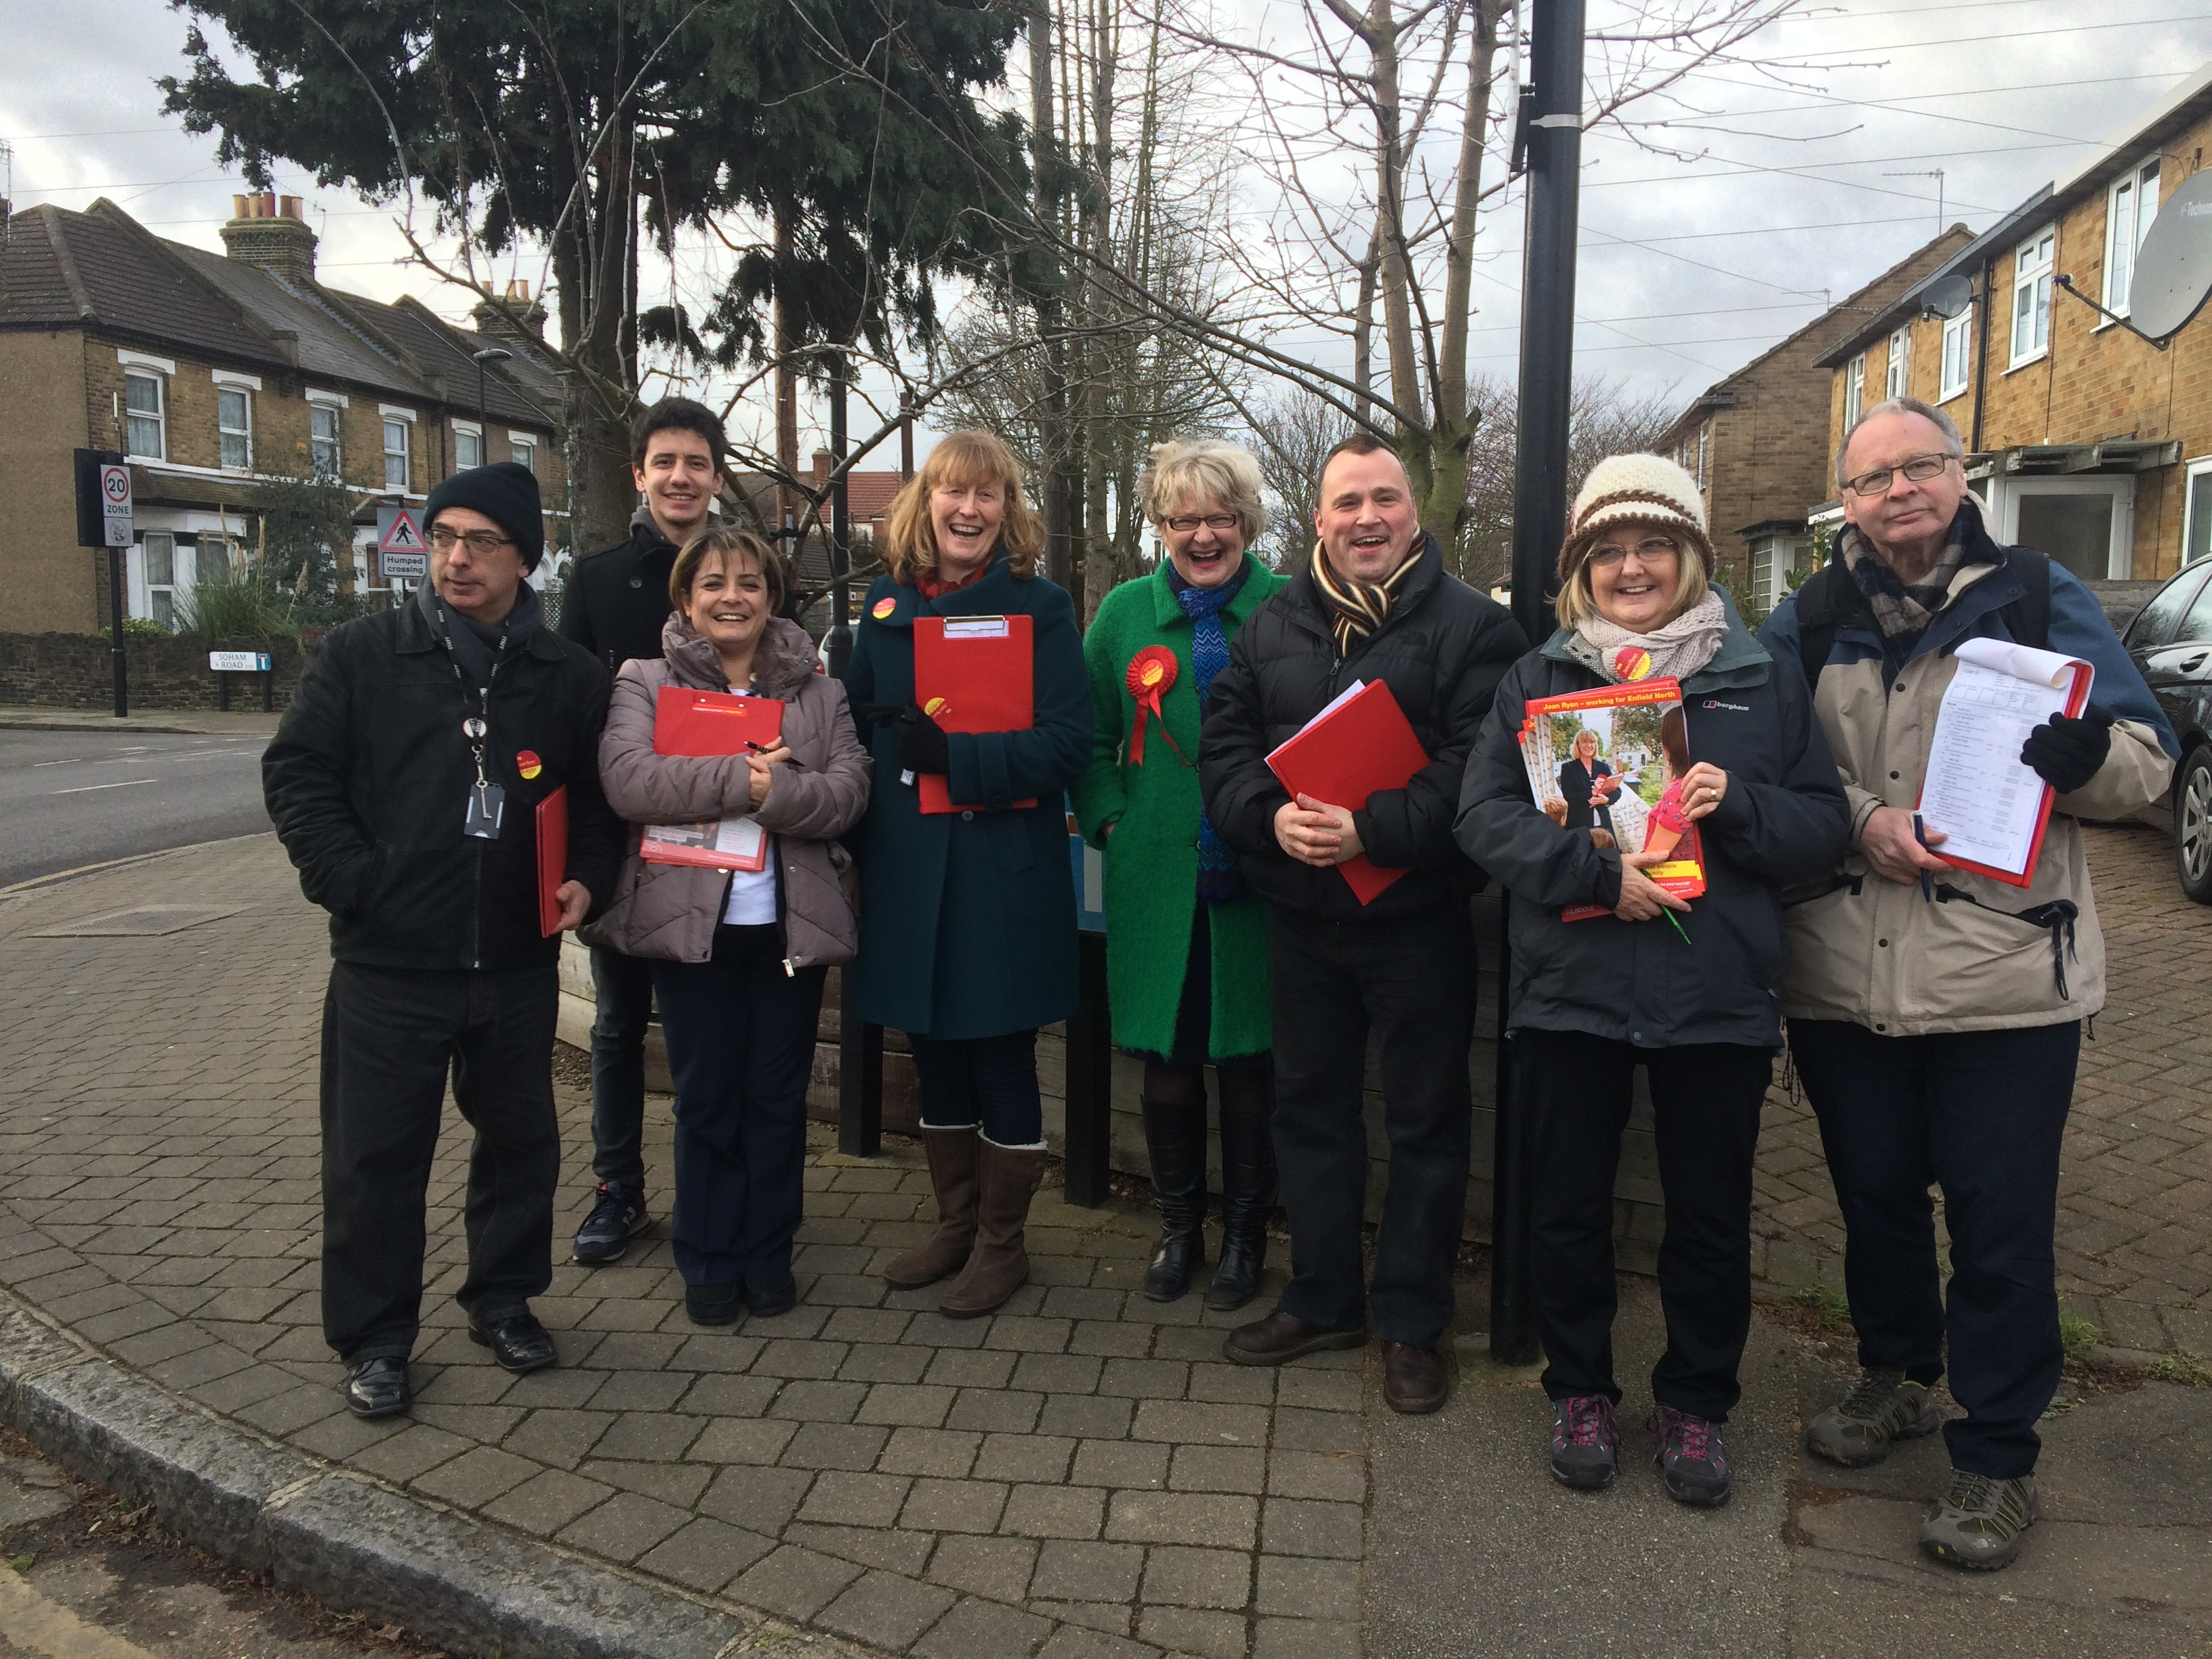 Helen_Goodman_MP__Joan_Ryan___Labour_canvassers.jpg